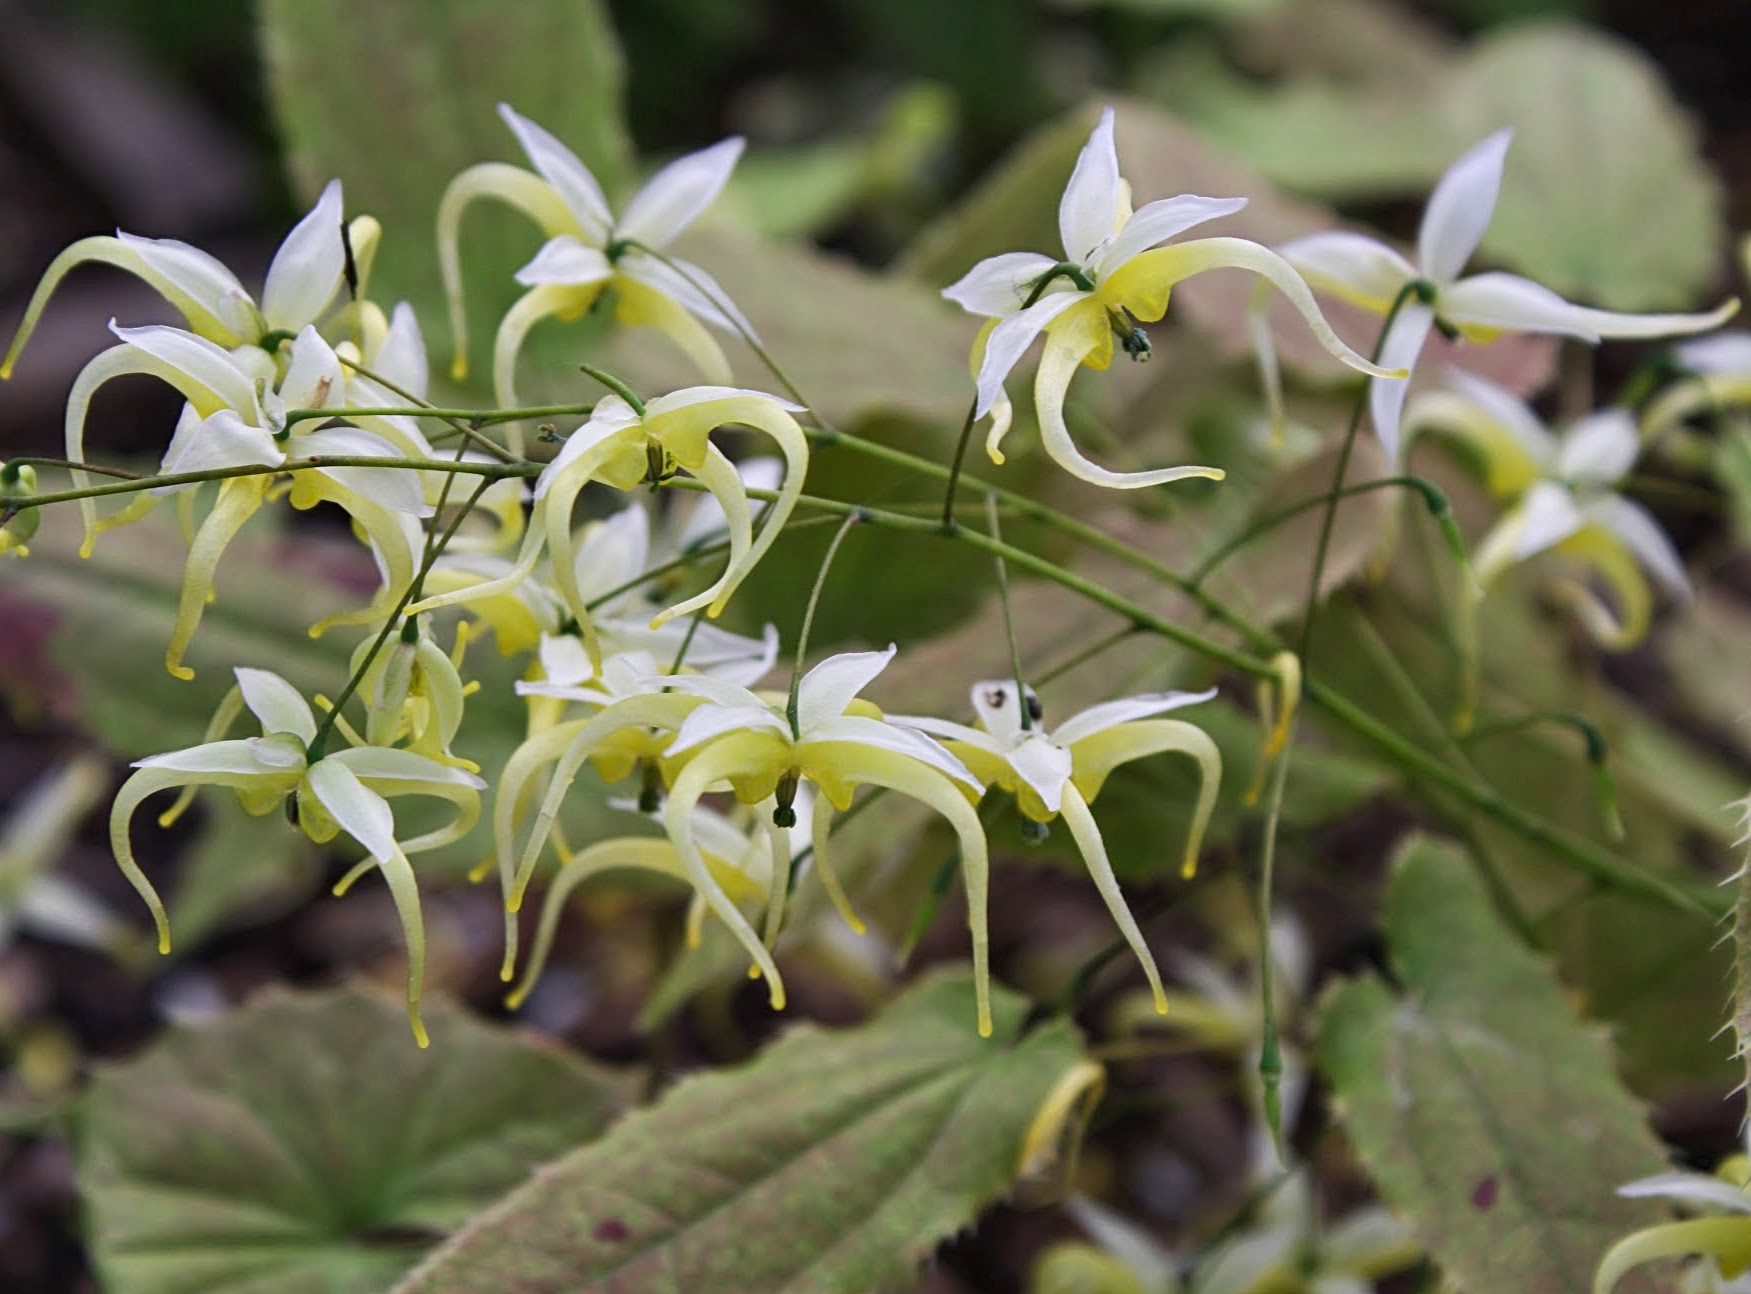 Epimedium chlorandrum 'Sichuan Spider' @ JLBG is a Dan Hinkley collection, DJHC705 of a Sichuan collection of the newly named. PDN added the cultivar name to this clone in 2015; evergreen